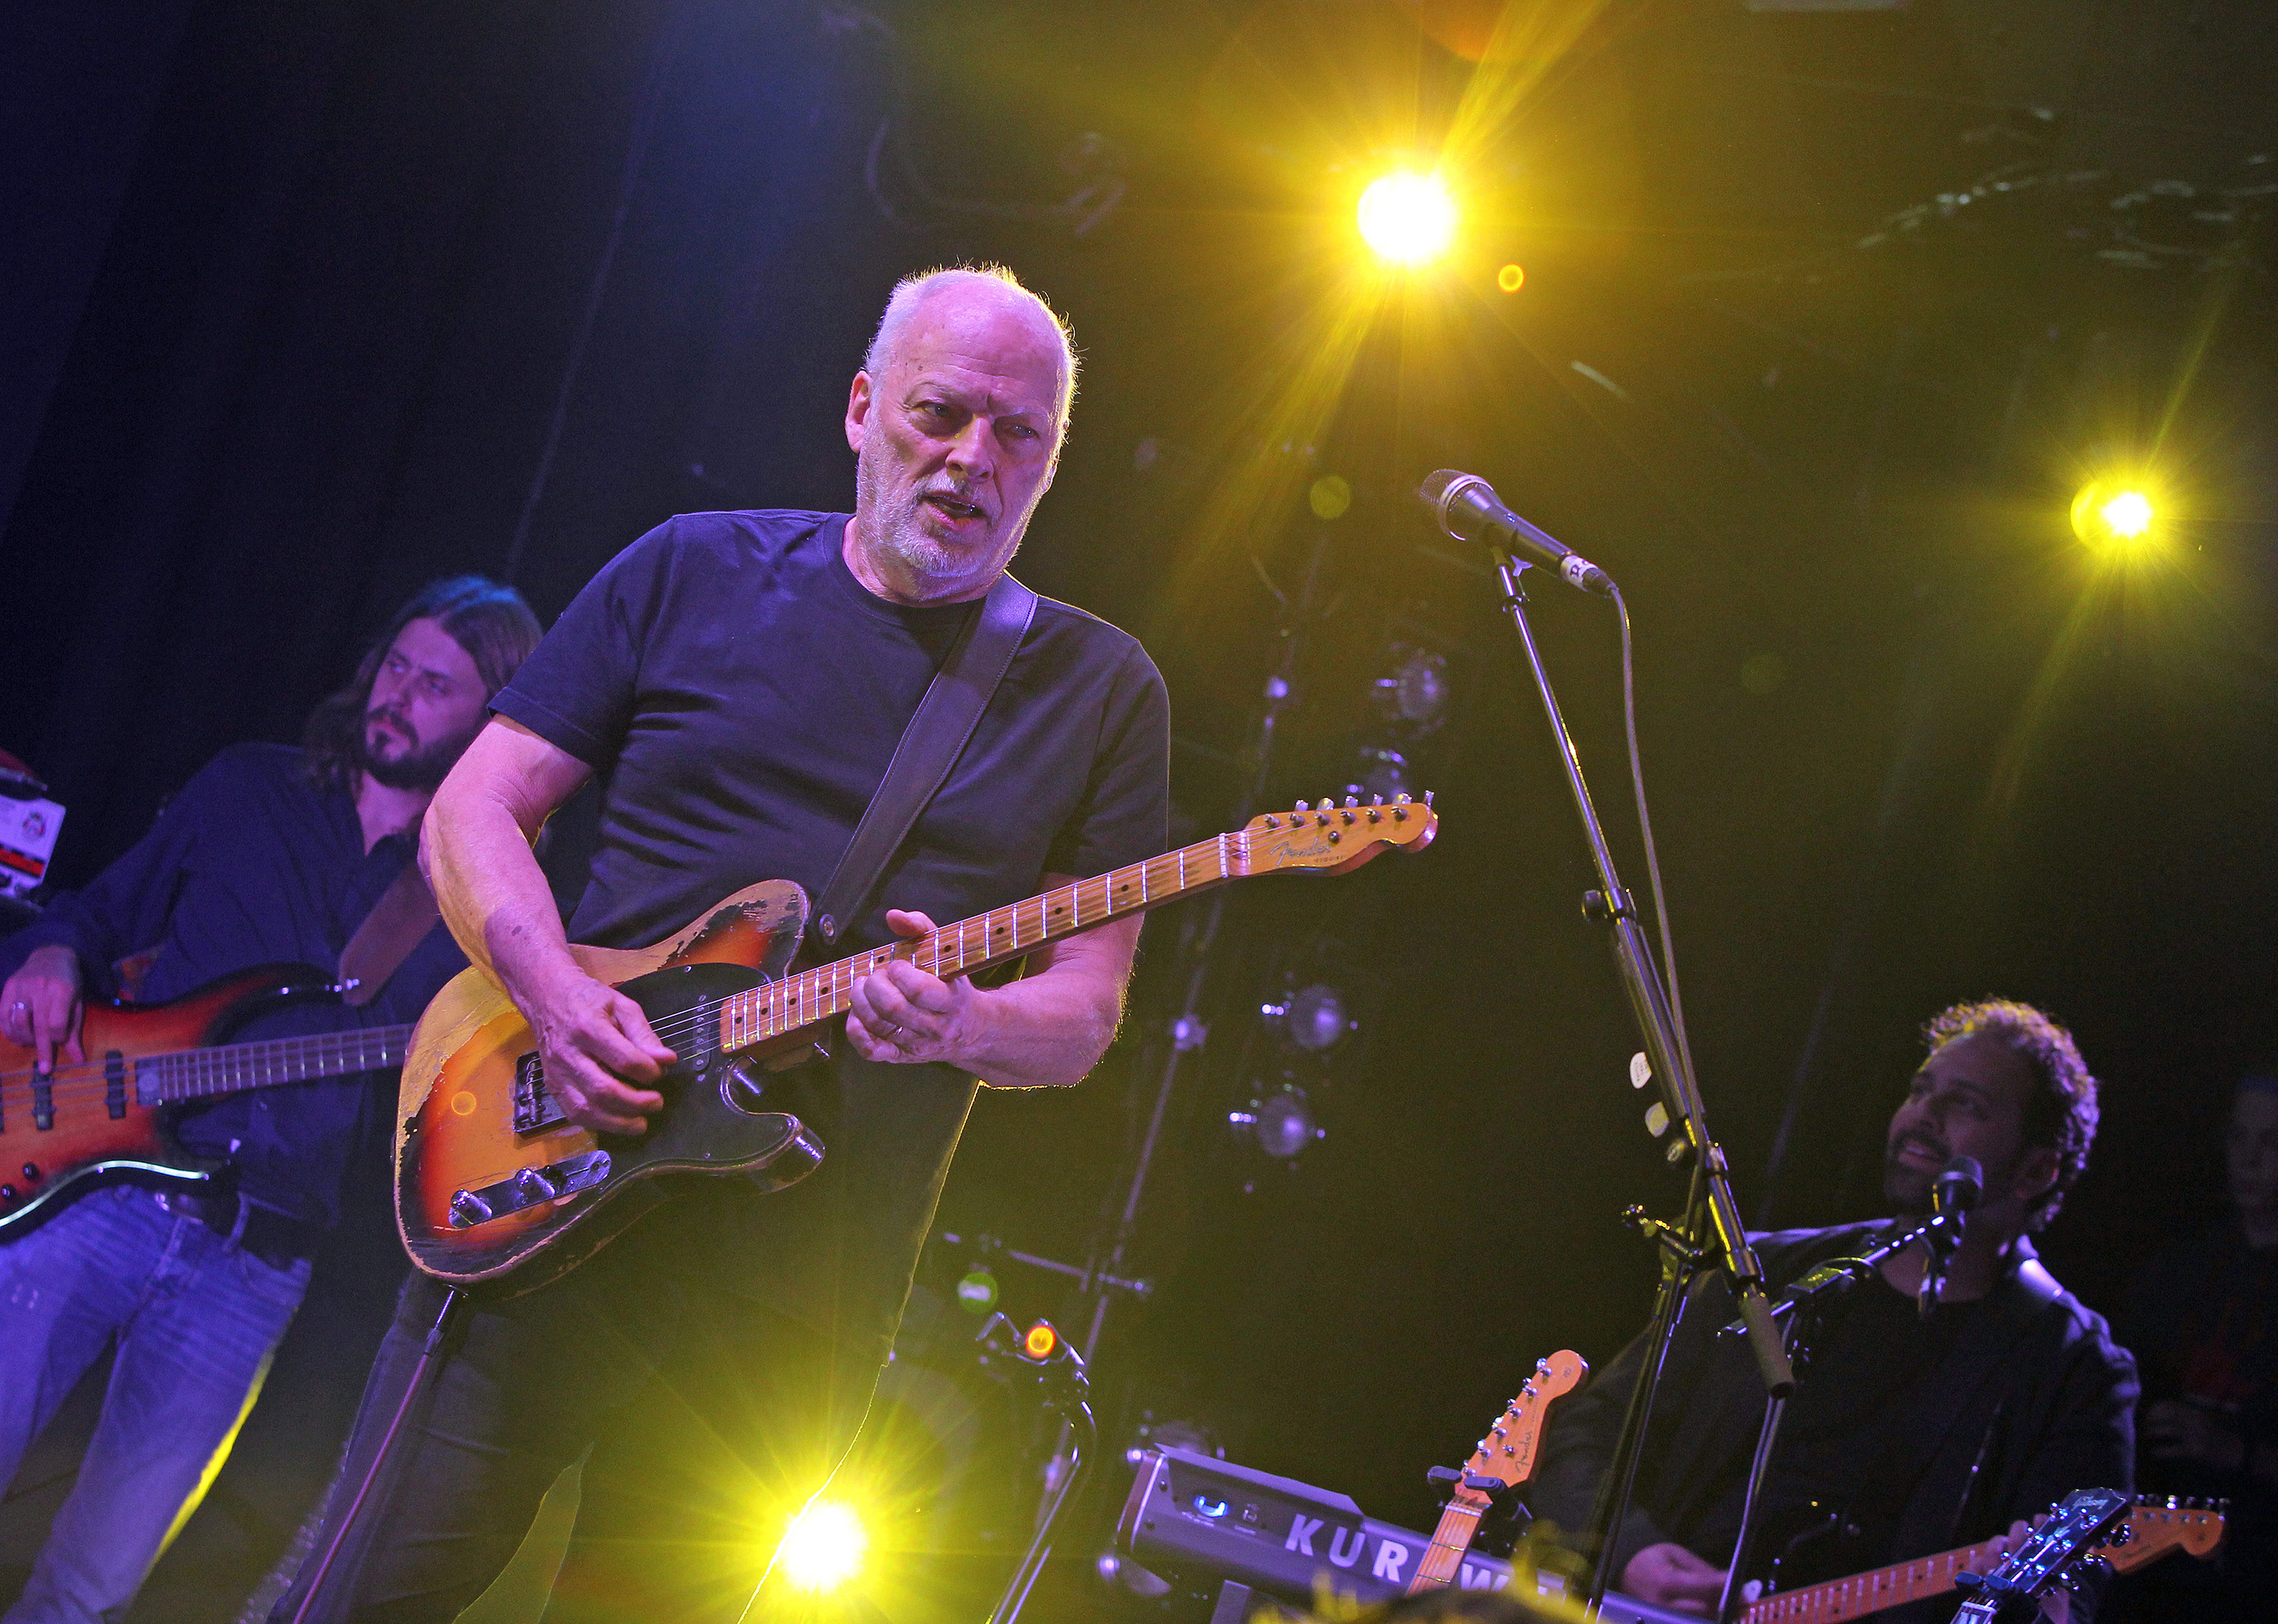 Live Review: Gilmour, Pussy Riot support Staging A Revolution I'm with Banned in London